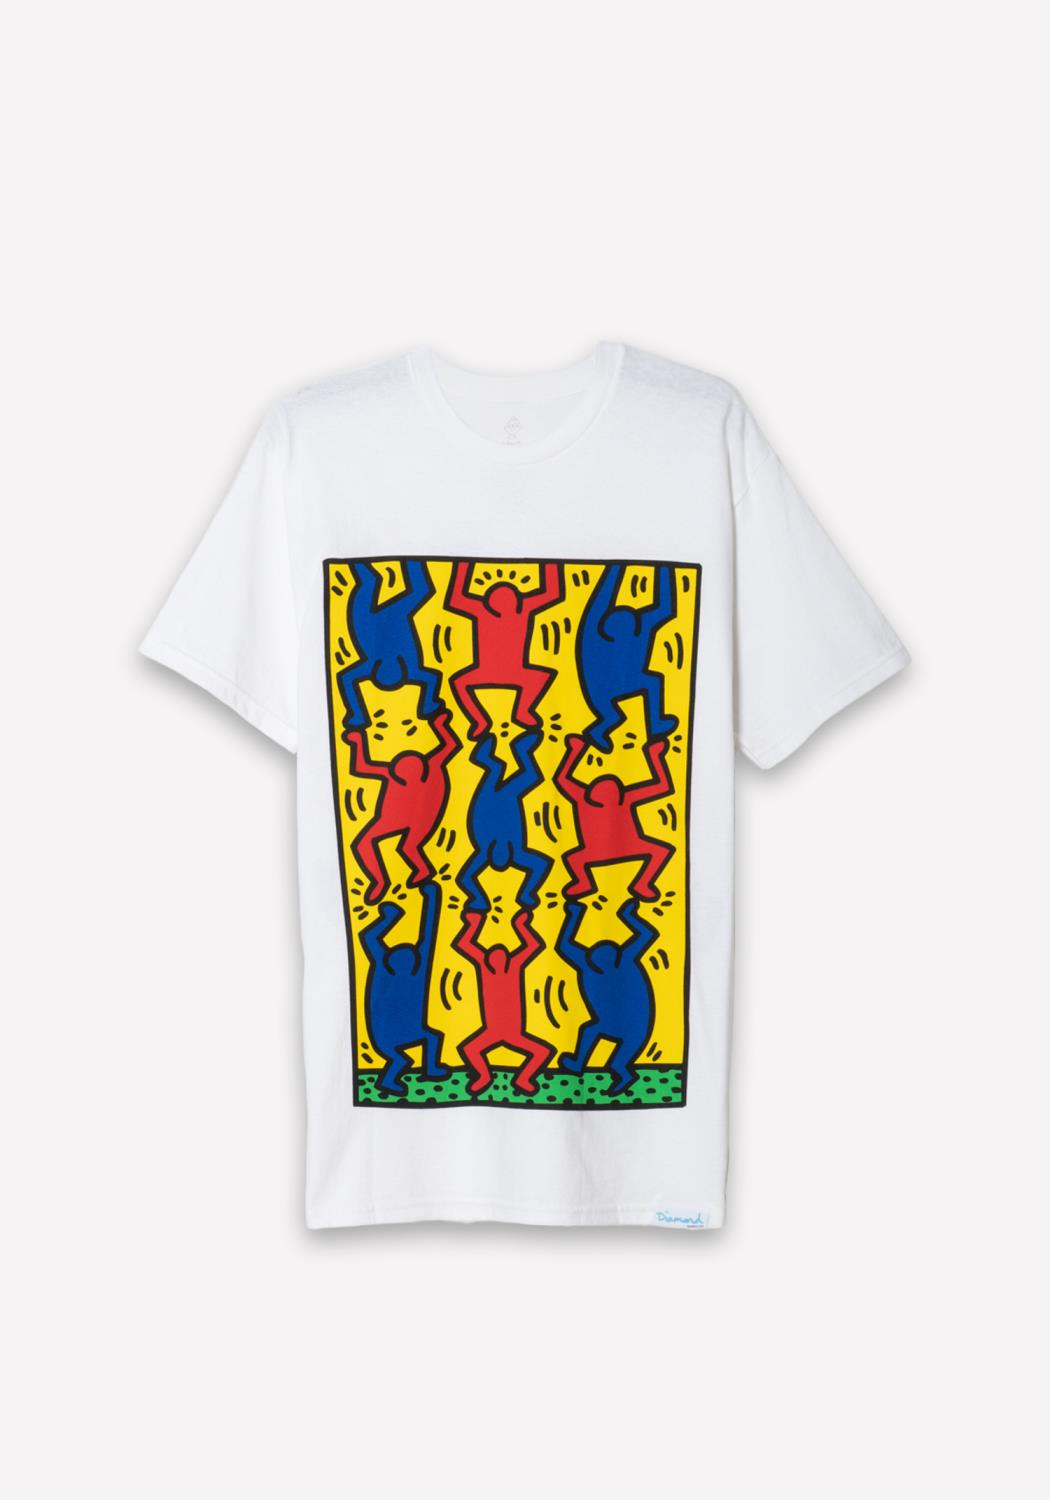 Diamond x Haring Fingers Crossed Tee in White